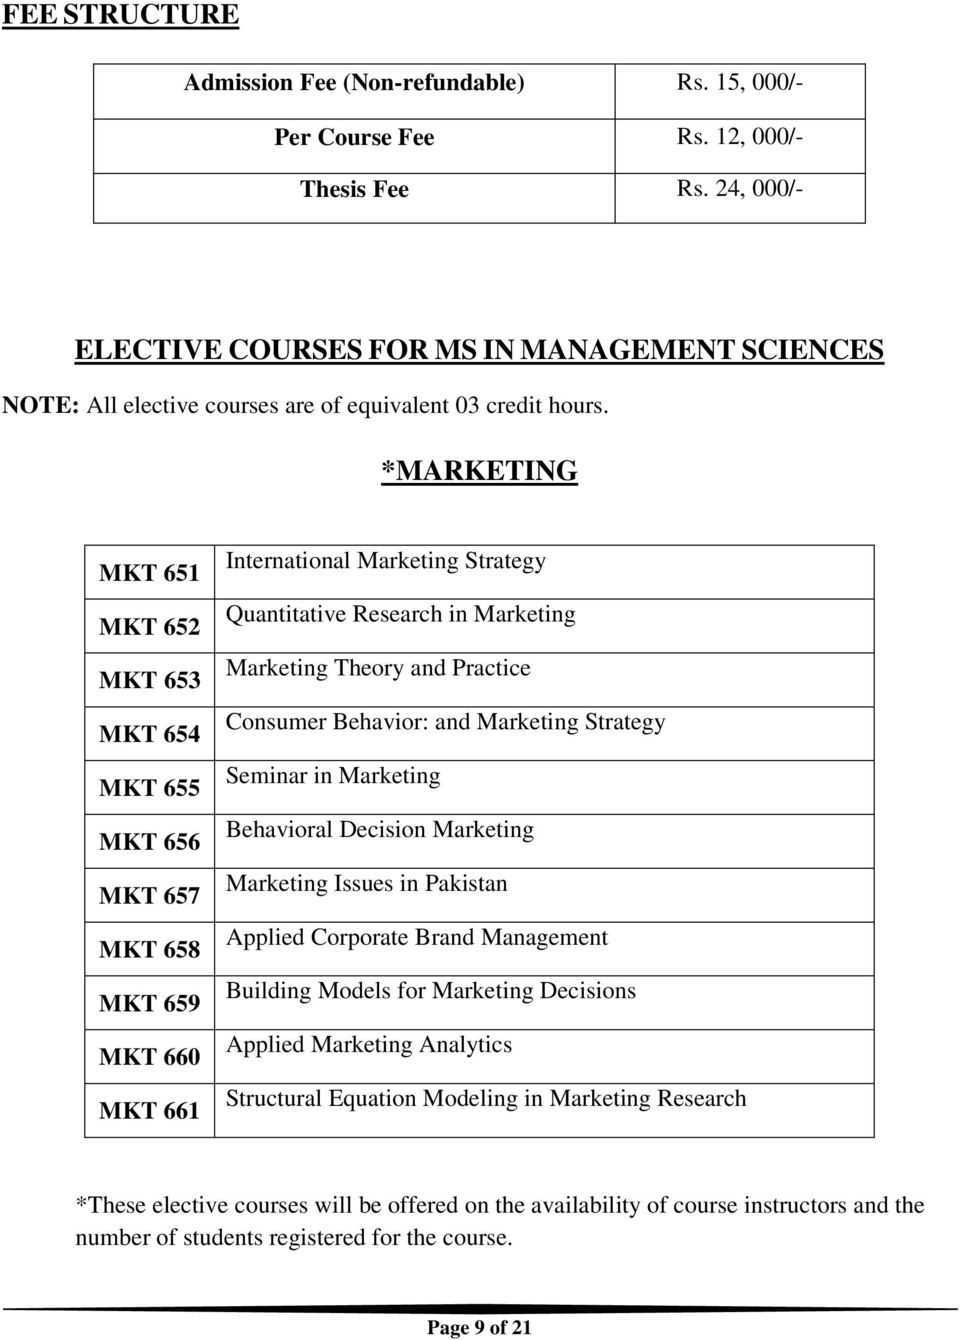 *MARKETING MKT 651 MKT 652 MKT 653 MKT 654 MKT 655 MKT 656 MKT 657 MKT 658 MKT 659 MKT 660 MKT 661 International Marketing Strategy Quantitative Research in Marketing Marketing Theory and Practice